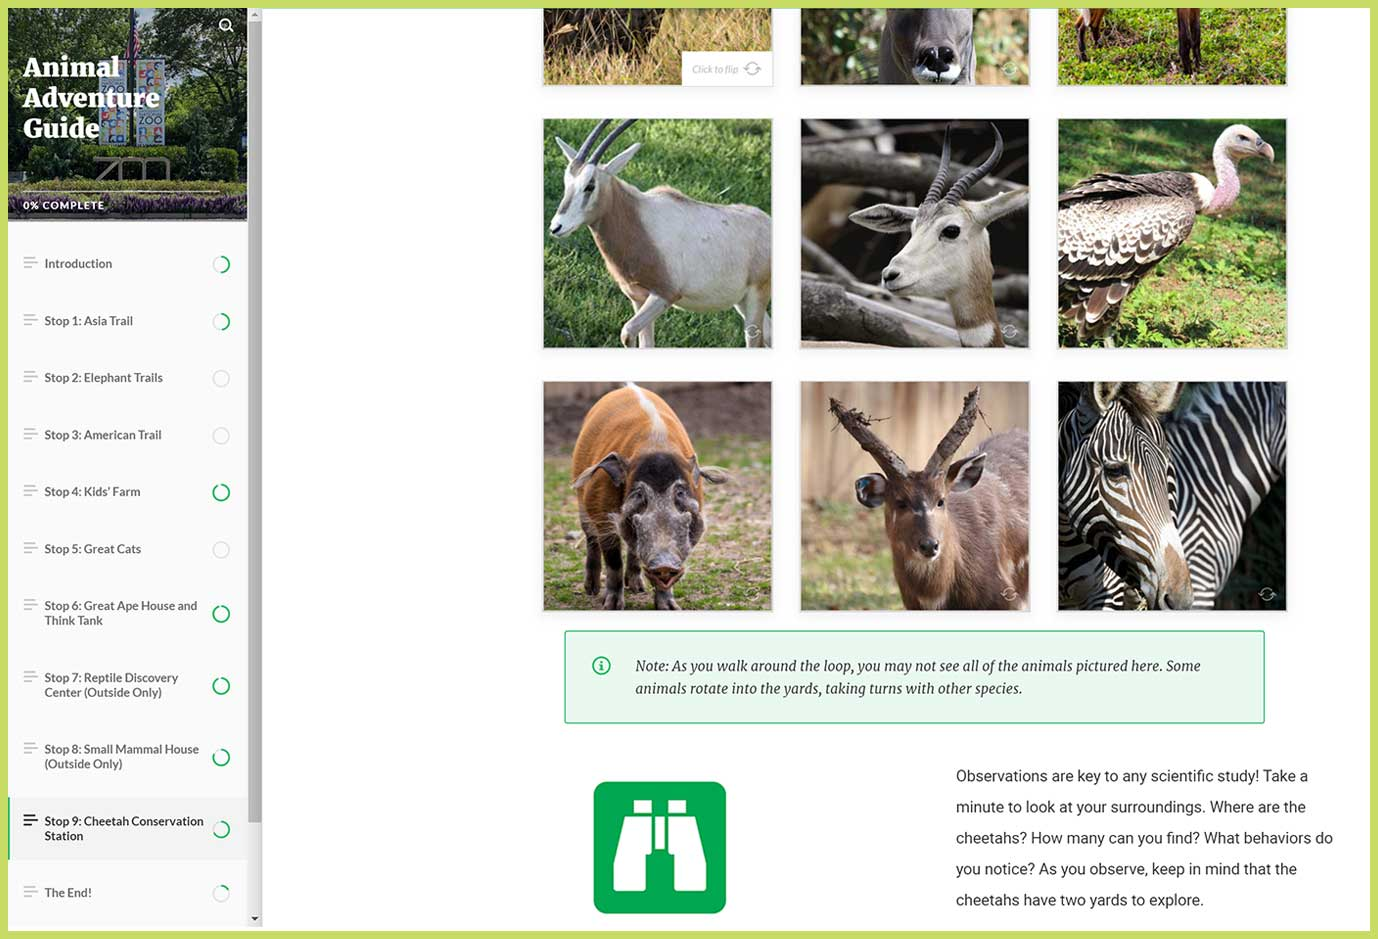 """A screen grab of the Zoo's Animal Adventure Guide. On the left-hand side is the title """"Animal Adventure Guide"""" and navigation to different animal exihibits, such as Asia Trail. On the right is a grid of animal photos, including vultures and dama gazelles."""